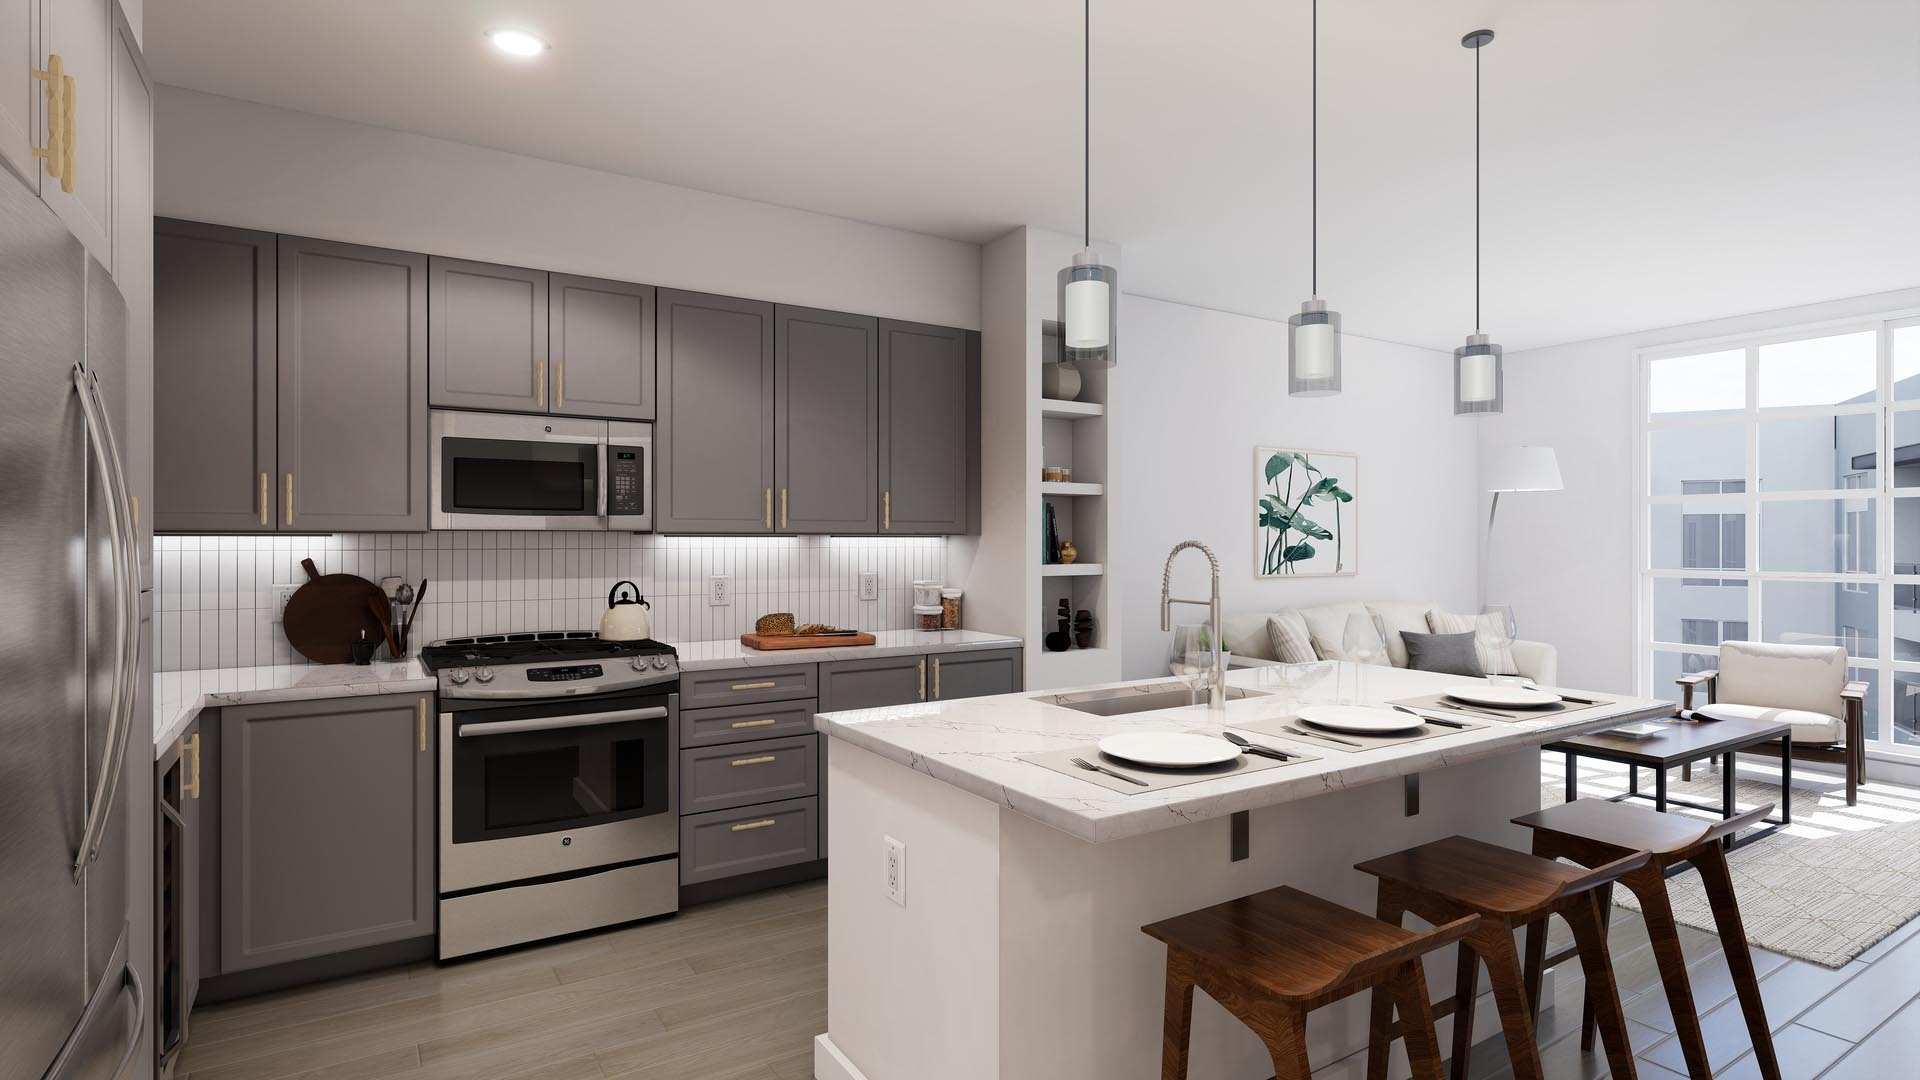 An apartment kitchen with finish option 2